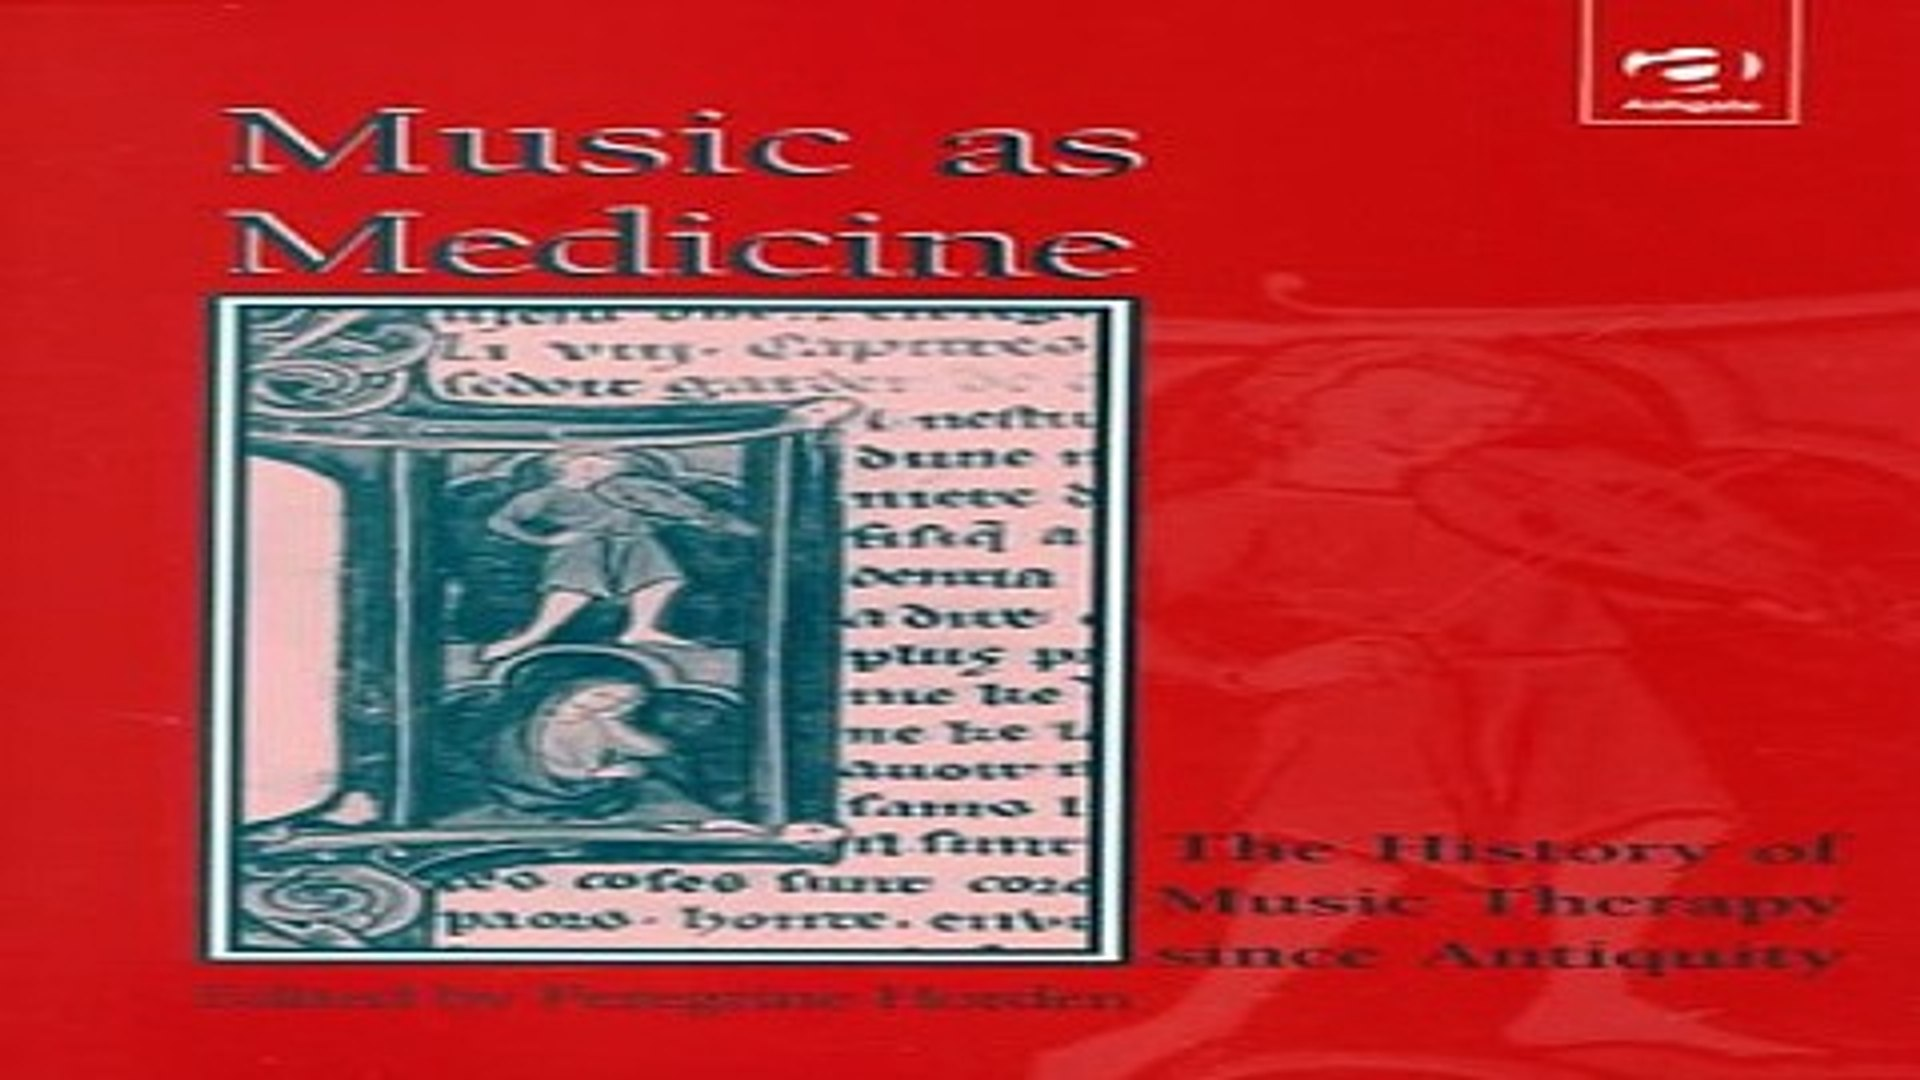 Download Music As Medicine  The History of Music Therapy Since Antiquity  Music   Medicine